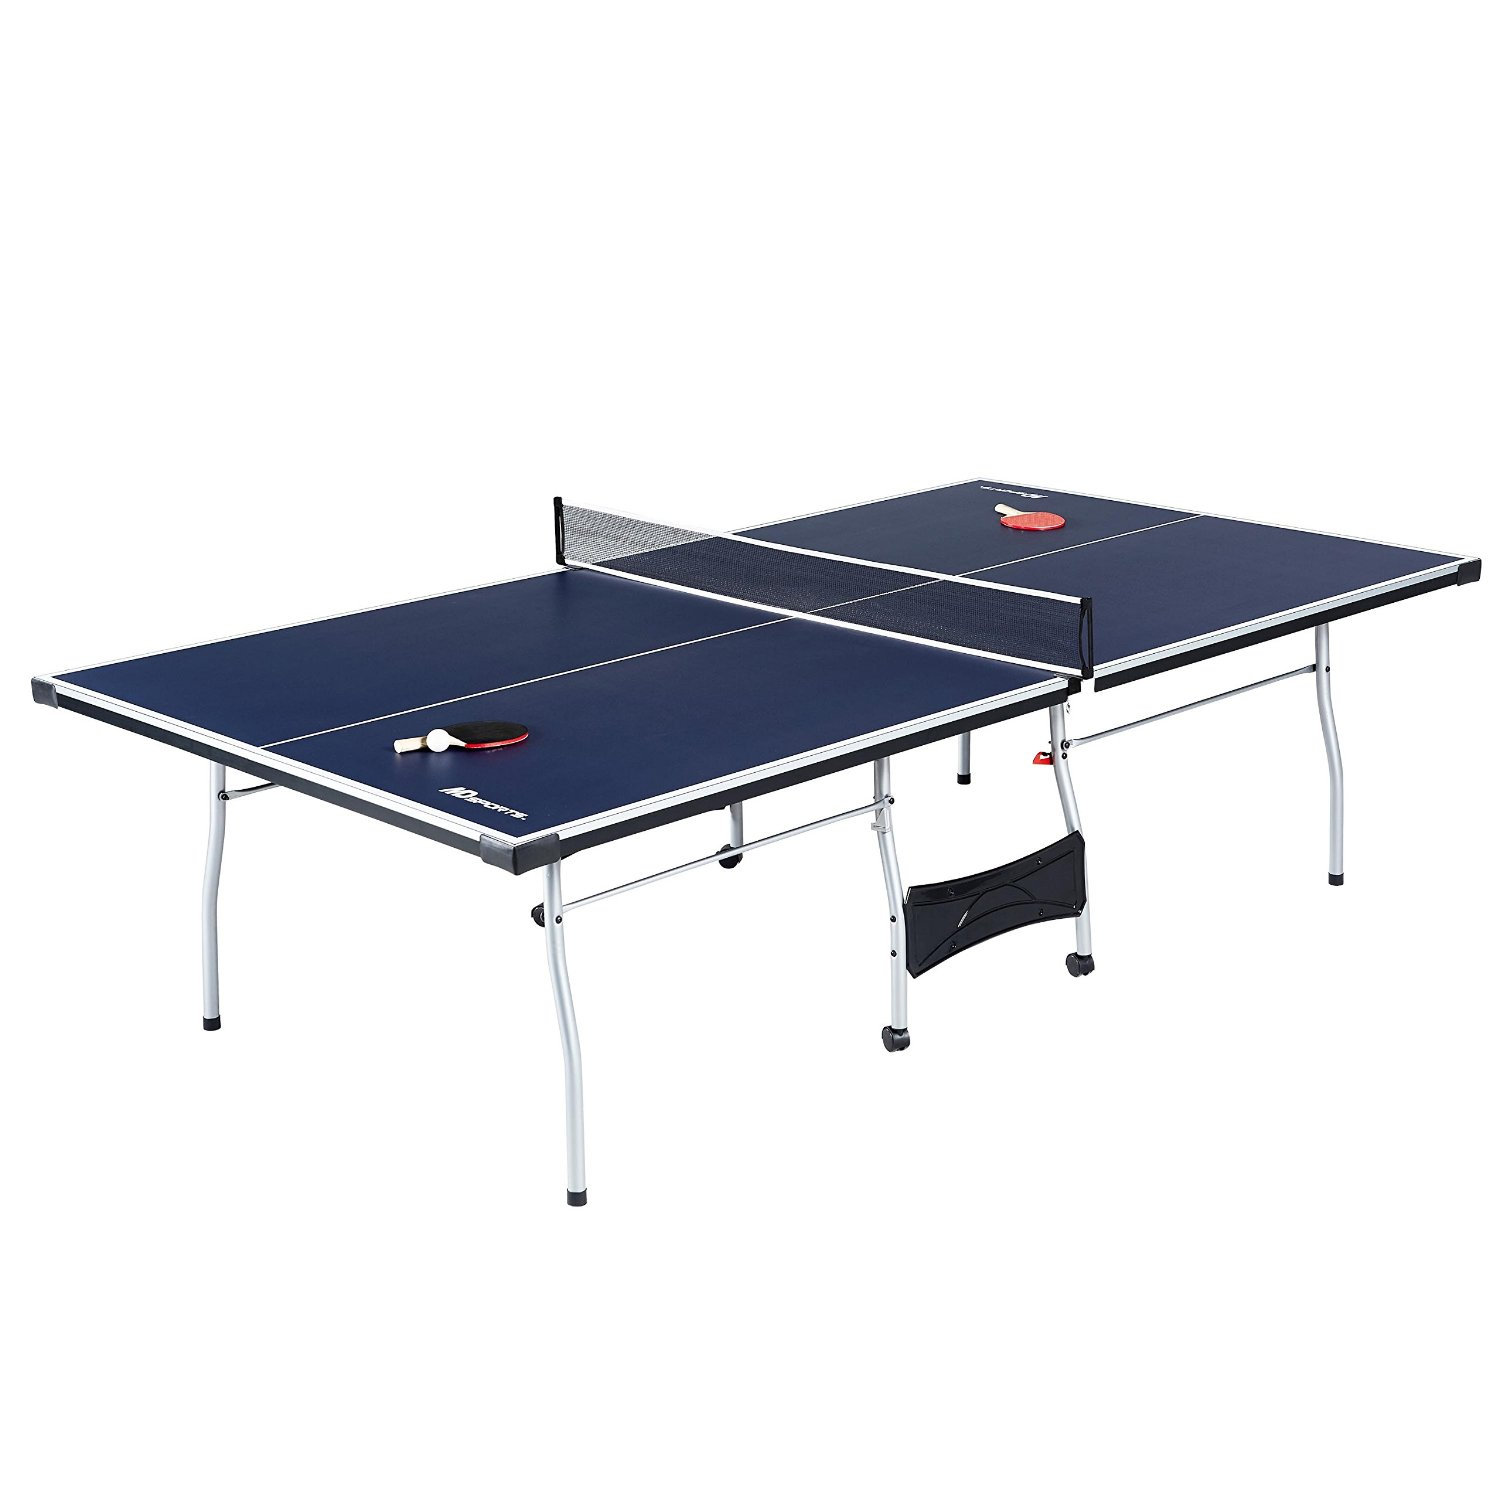 MD Sports Table Tennis Set, Regulation Ping Pong Table With Net, Paddles  And Balls For Only $60.47 W/ Free Shipping!